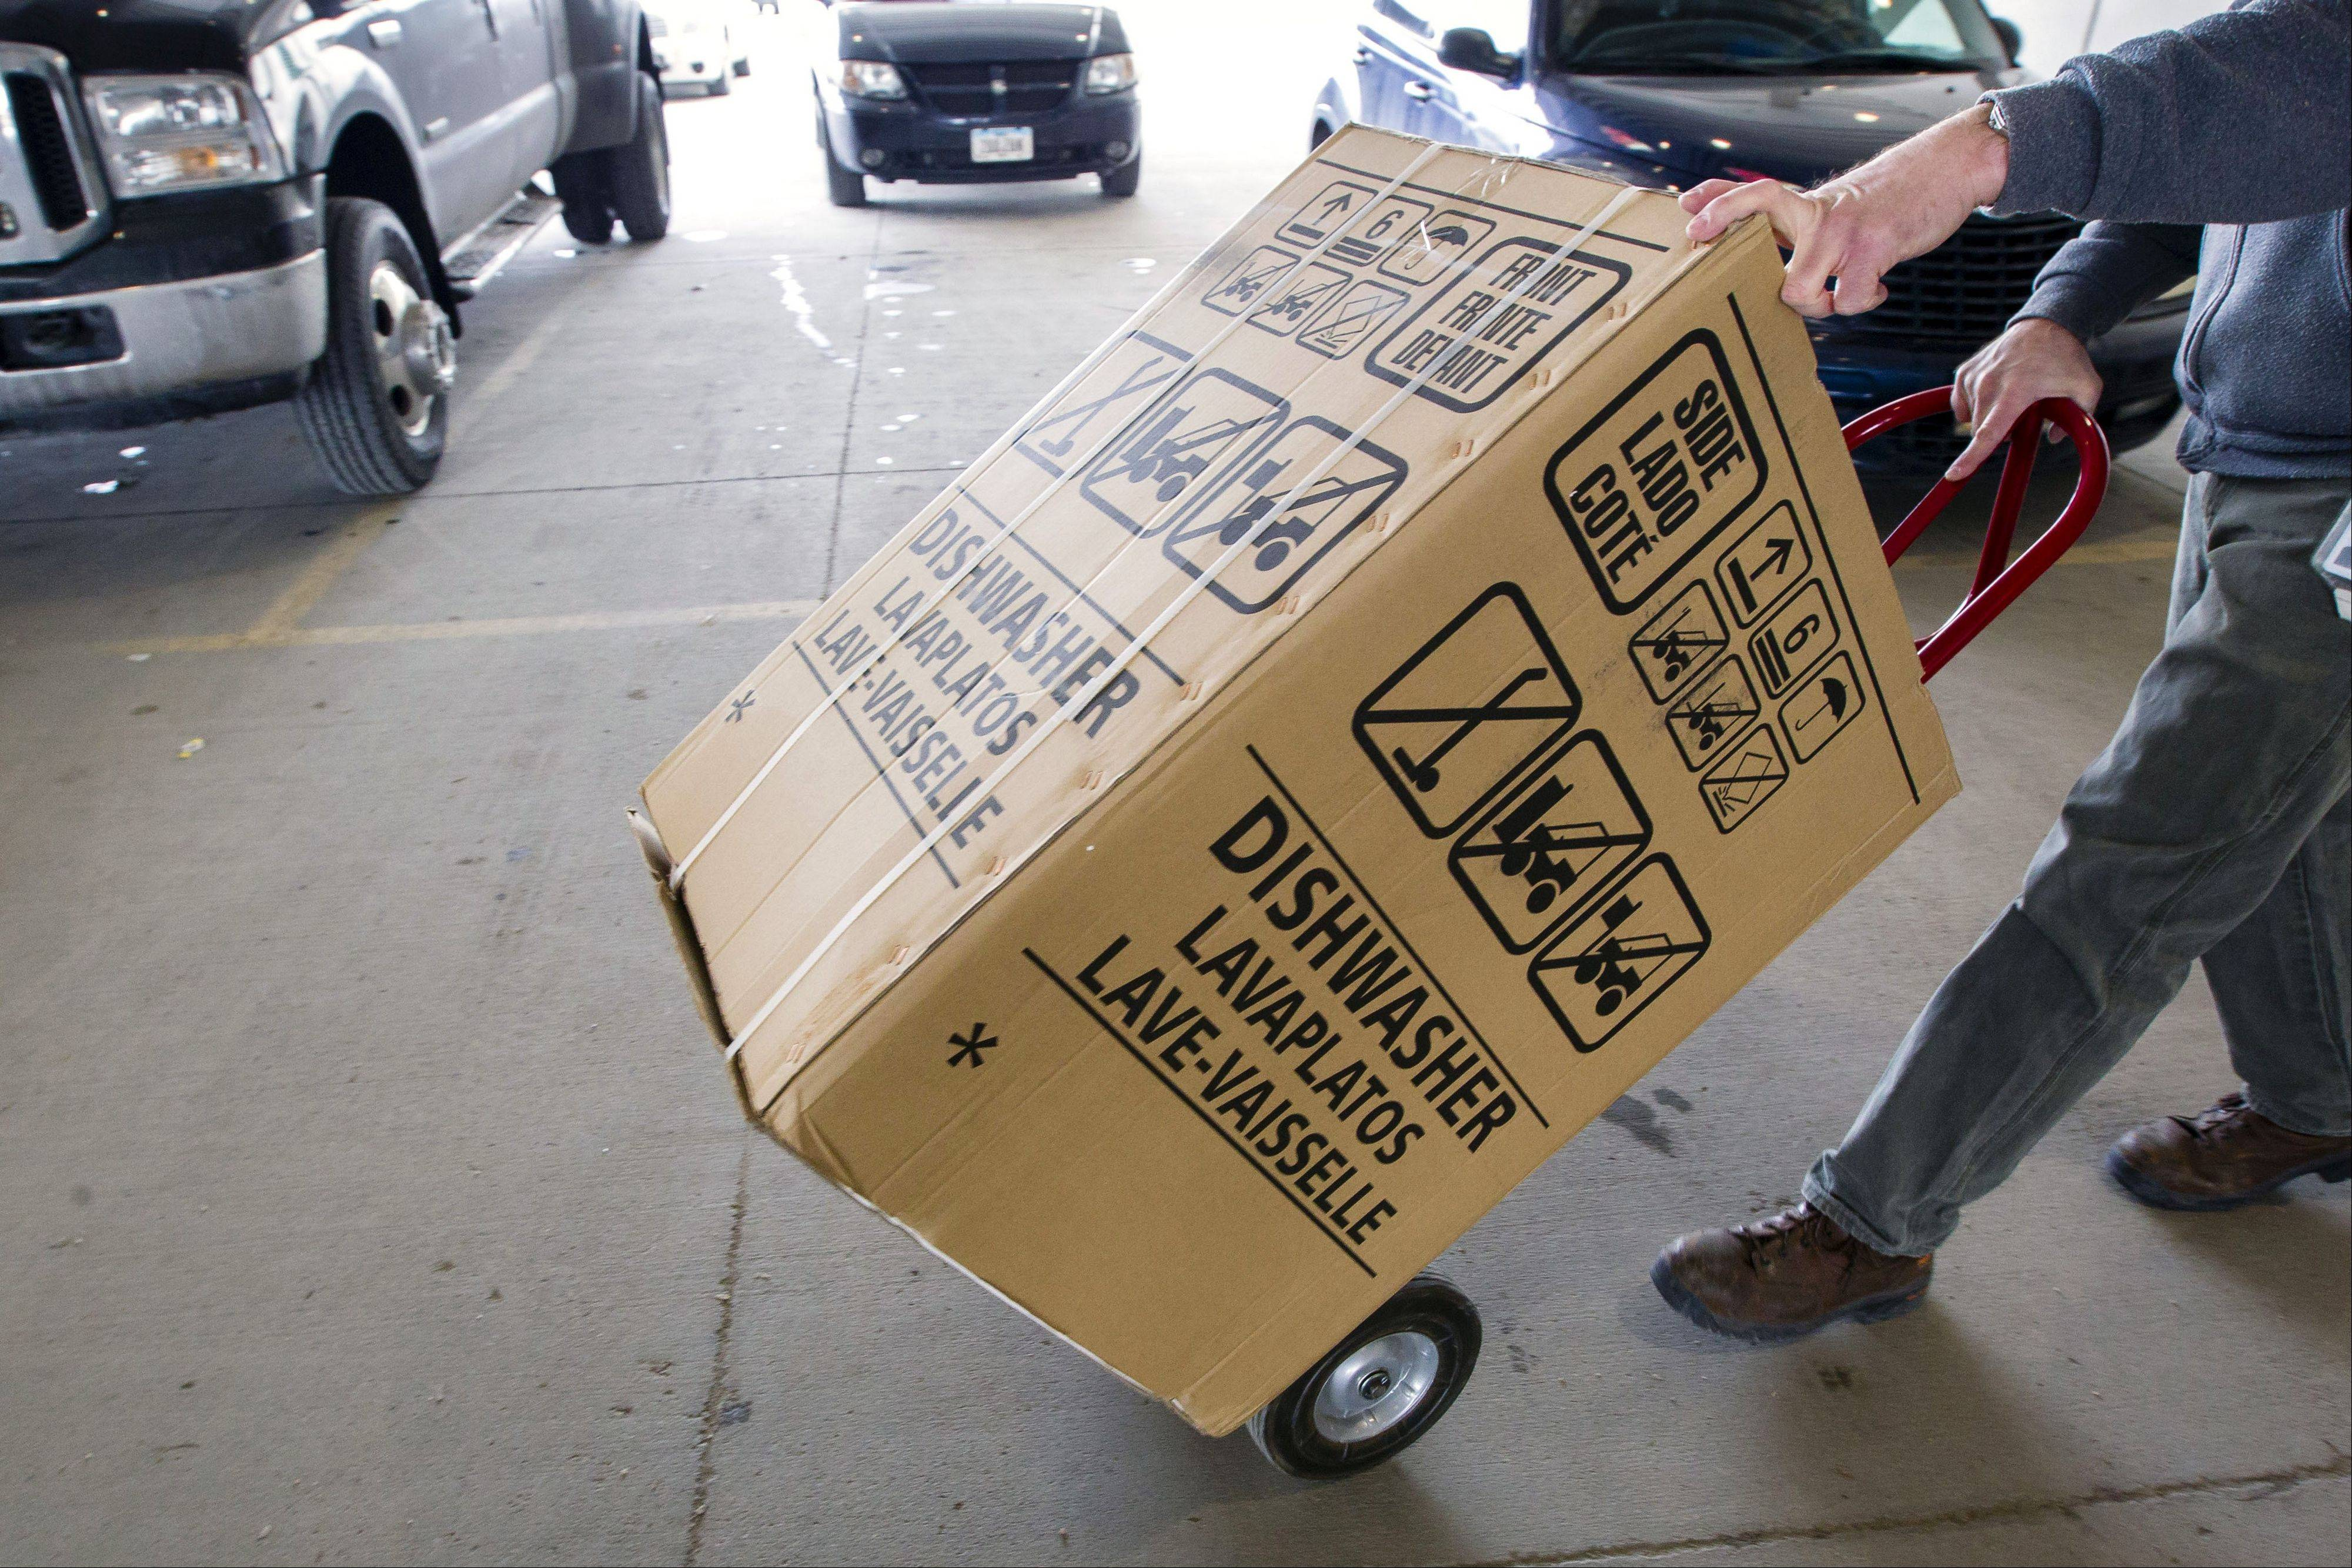 An employees carts a dishwasher to a customer's vehicle at the loading docks of Nebraska Furniture Mart in Omaha, A surge in commercial aircraft demand pushed orders for U.S. long-lasting manufactured goods up sharply in February.